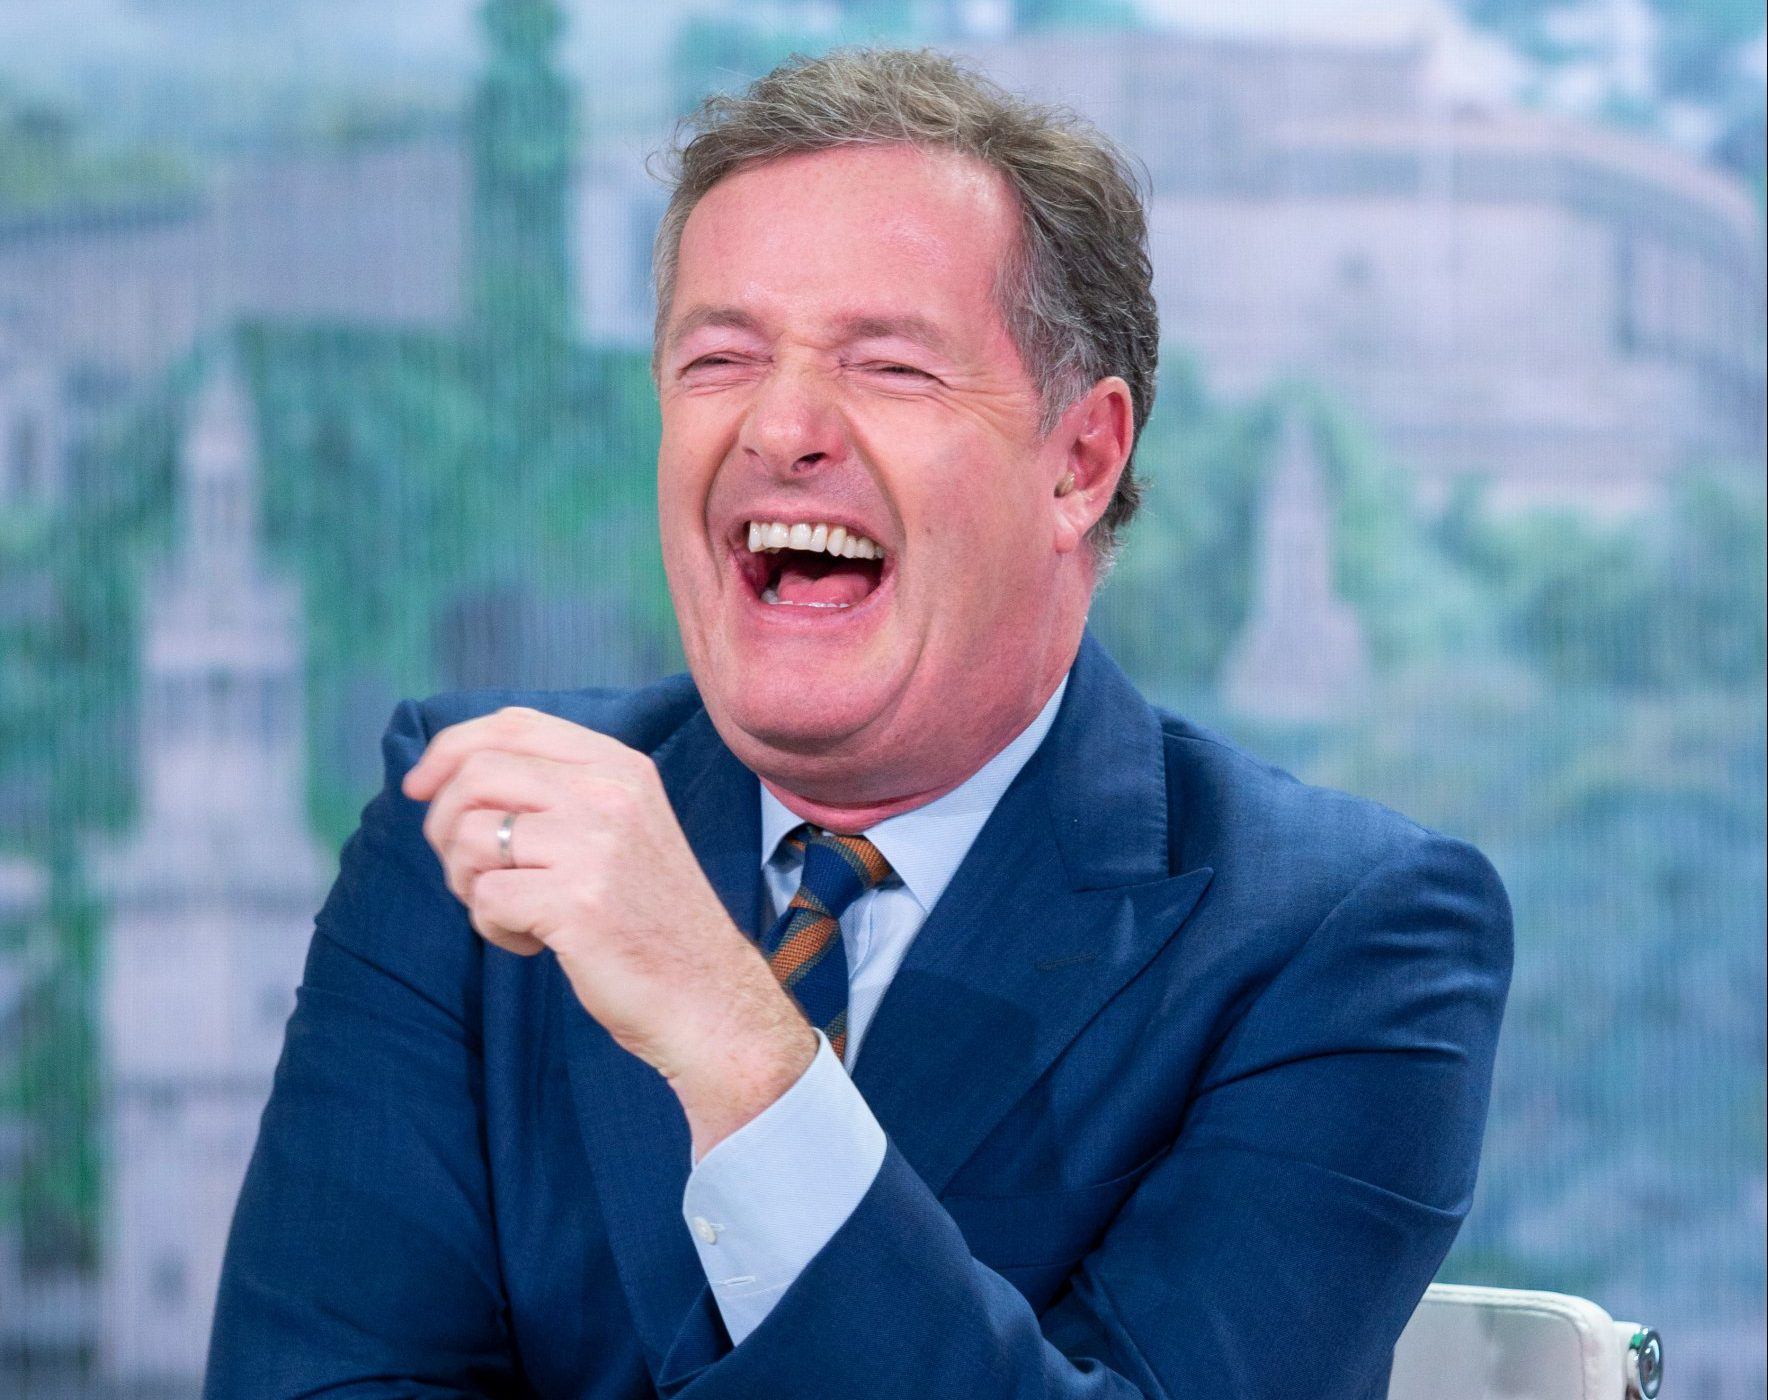 Piers Morgan is going to be put through the pain of childbirth on live TV